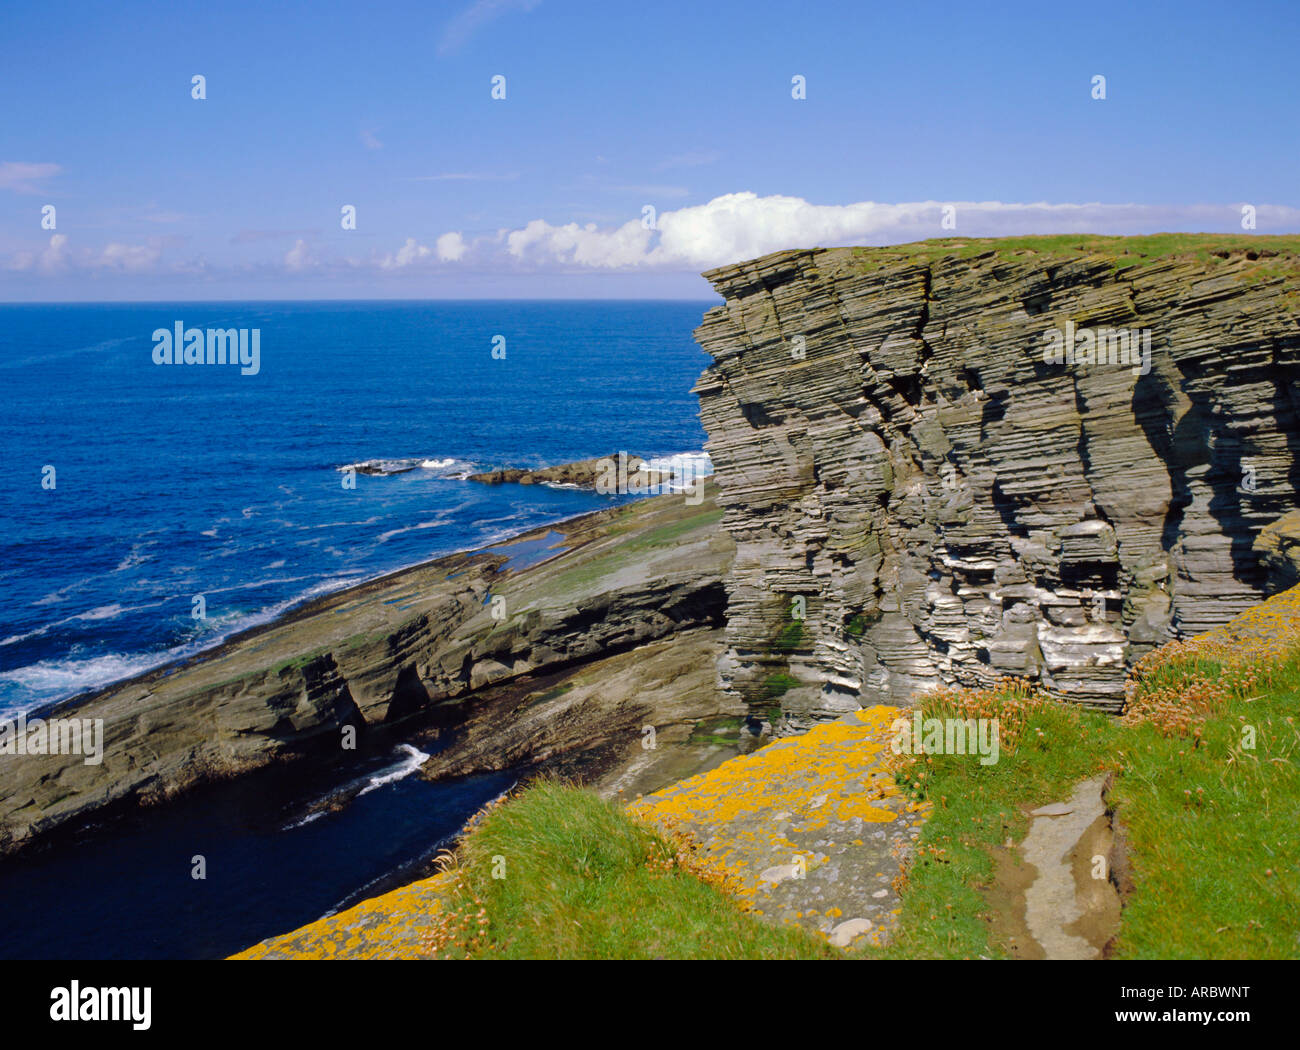 Cliffs at Brough of Birsay off the Mainland, Orkney Islands, Scotland, UK, Europe - Stock Image